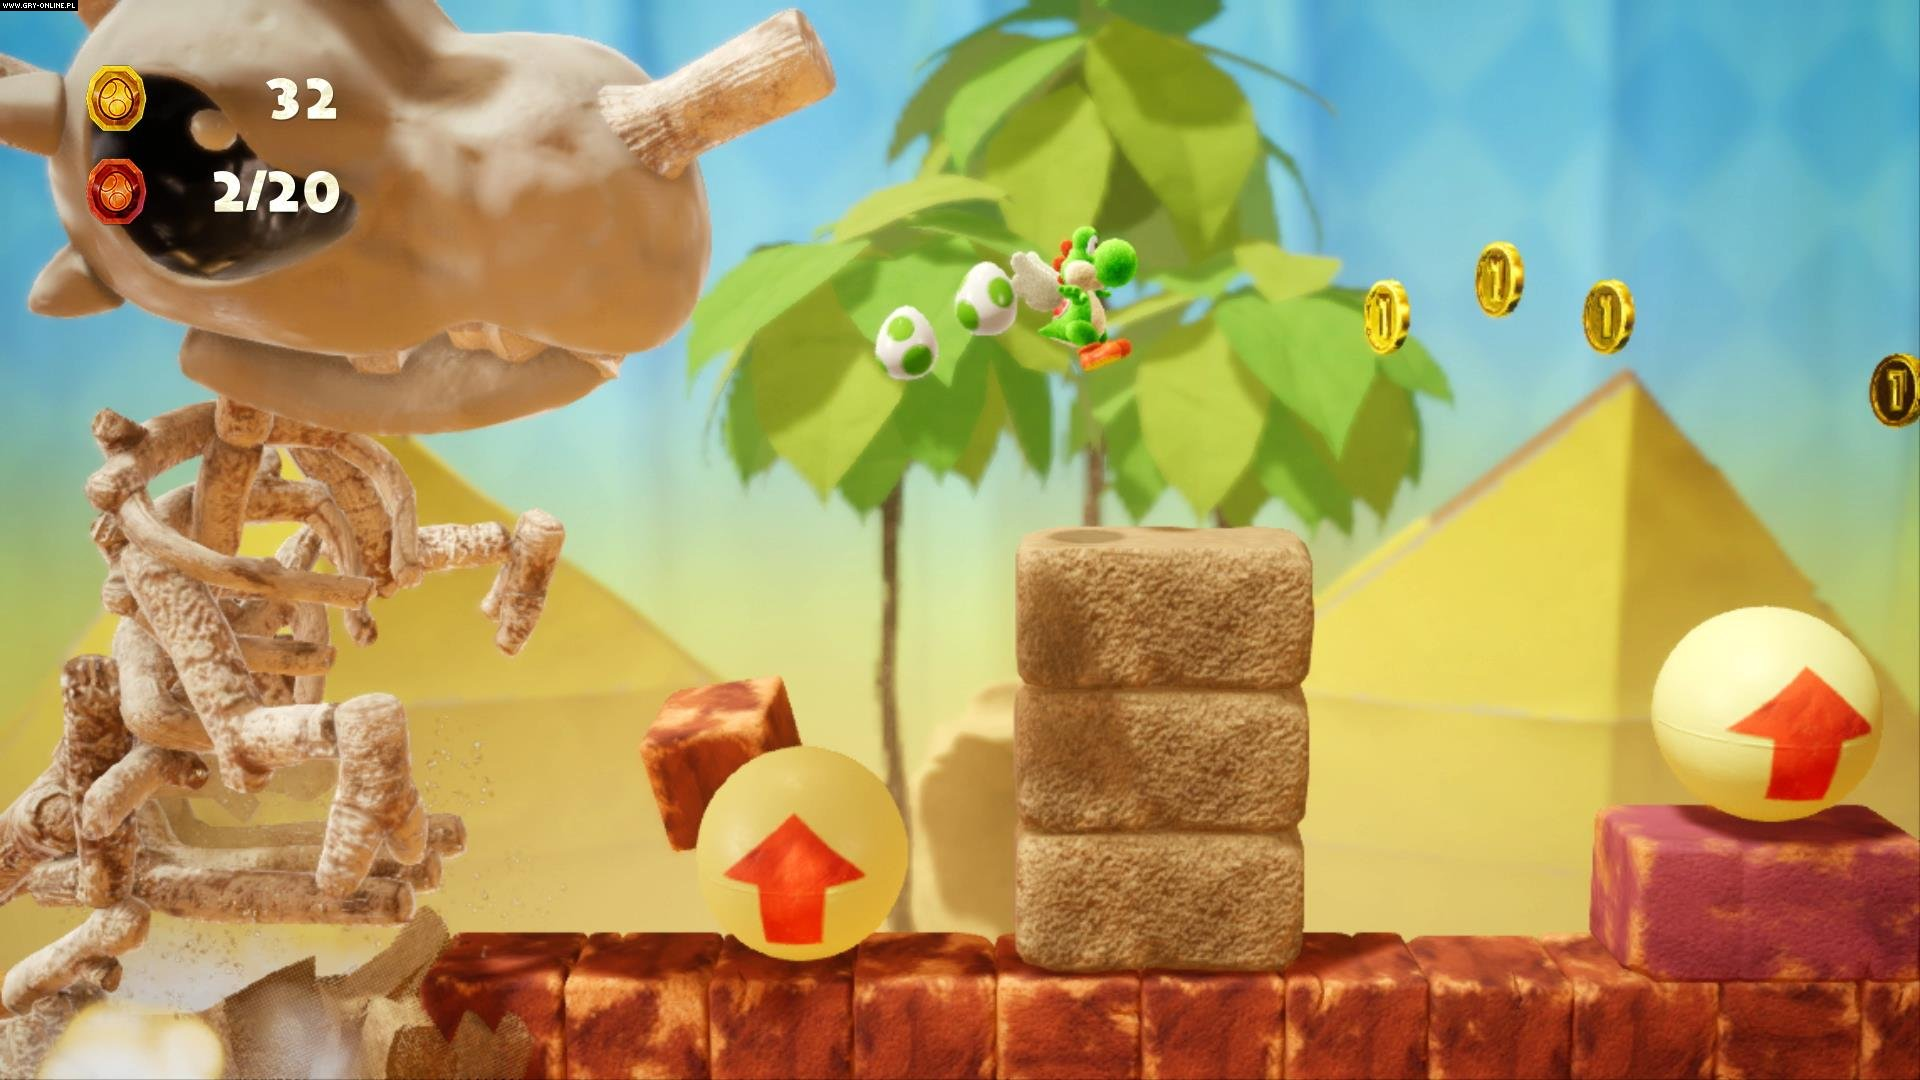 Yoshi's Crafted World Switch Gry Screen 14/24, Good-Feel, Nintendo